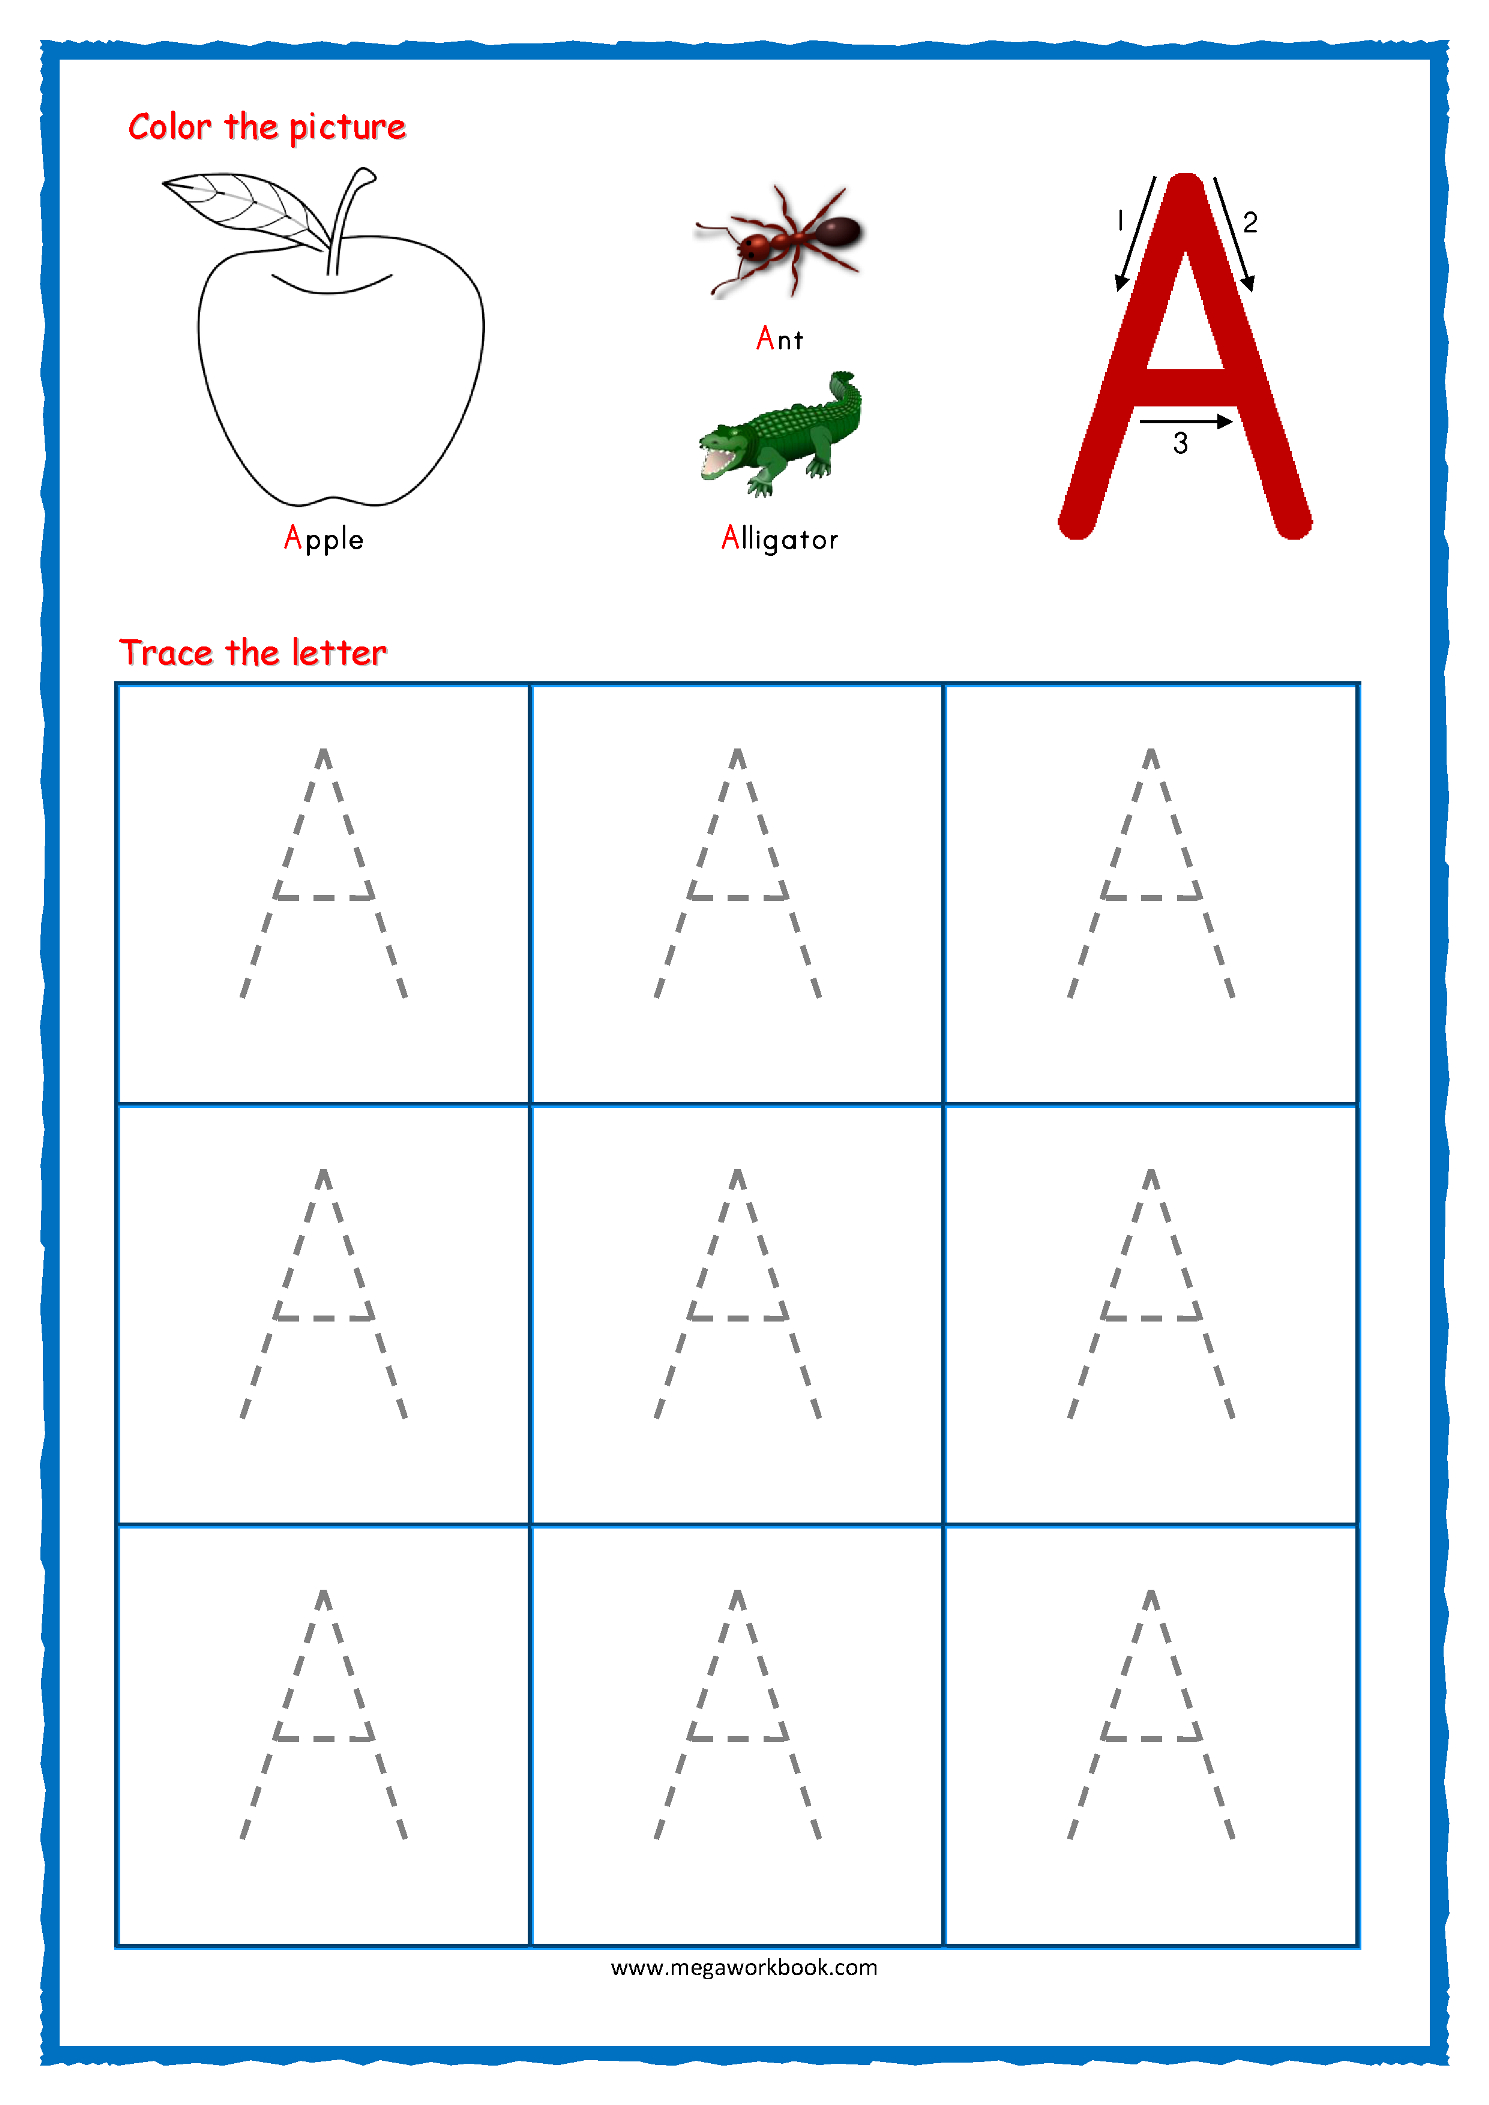 Tracing Big Letters Worksheets | TracingLettersWorksheets.com